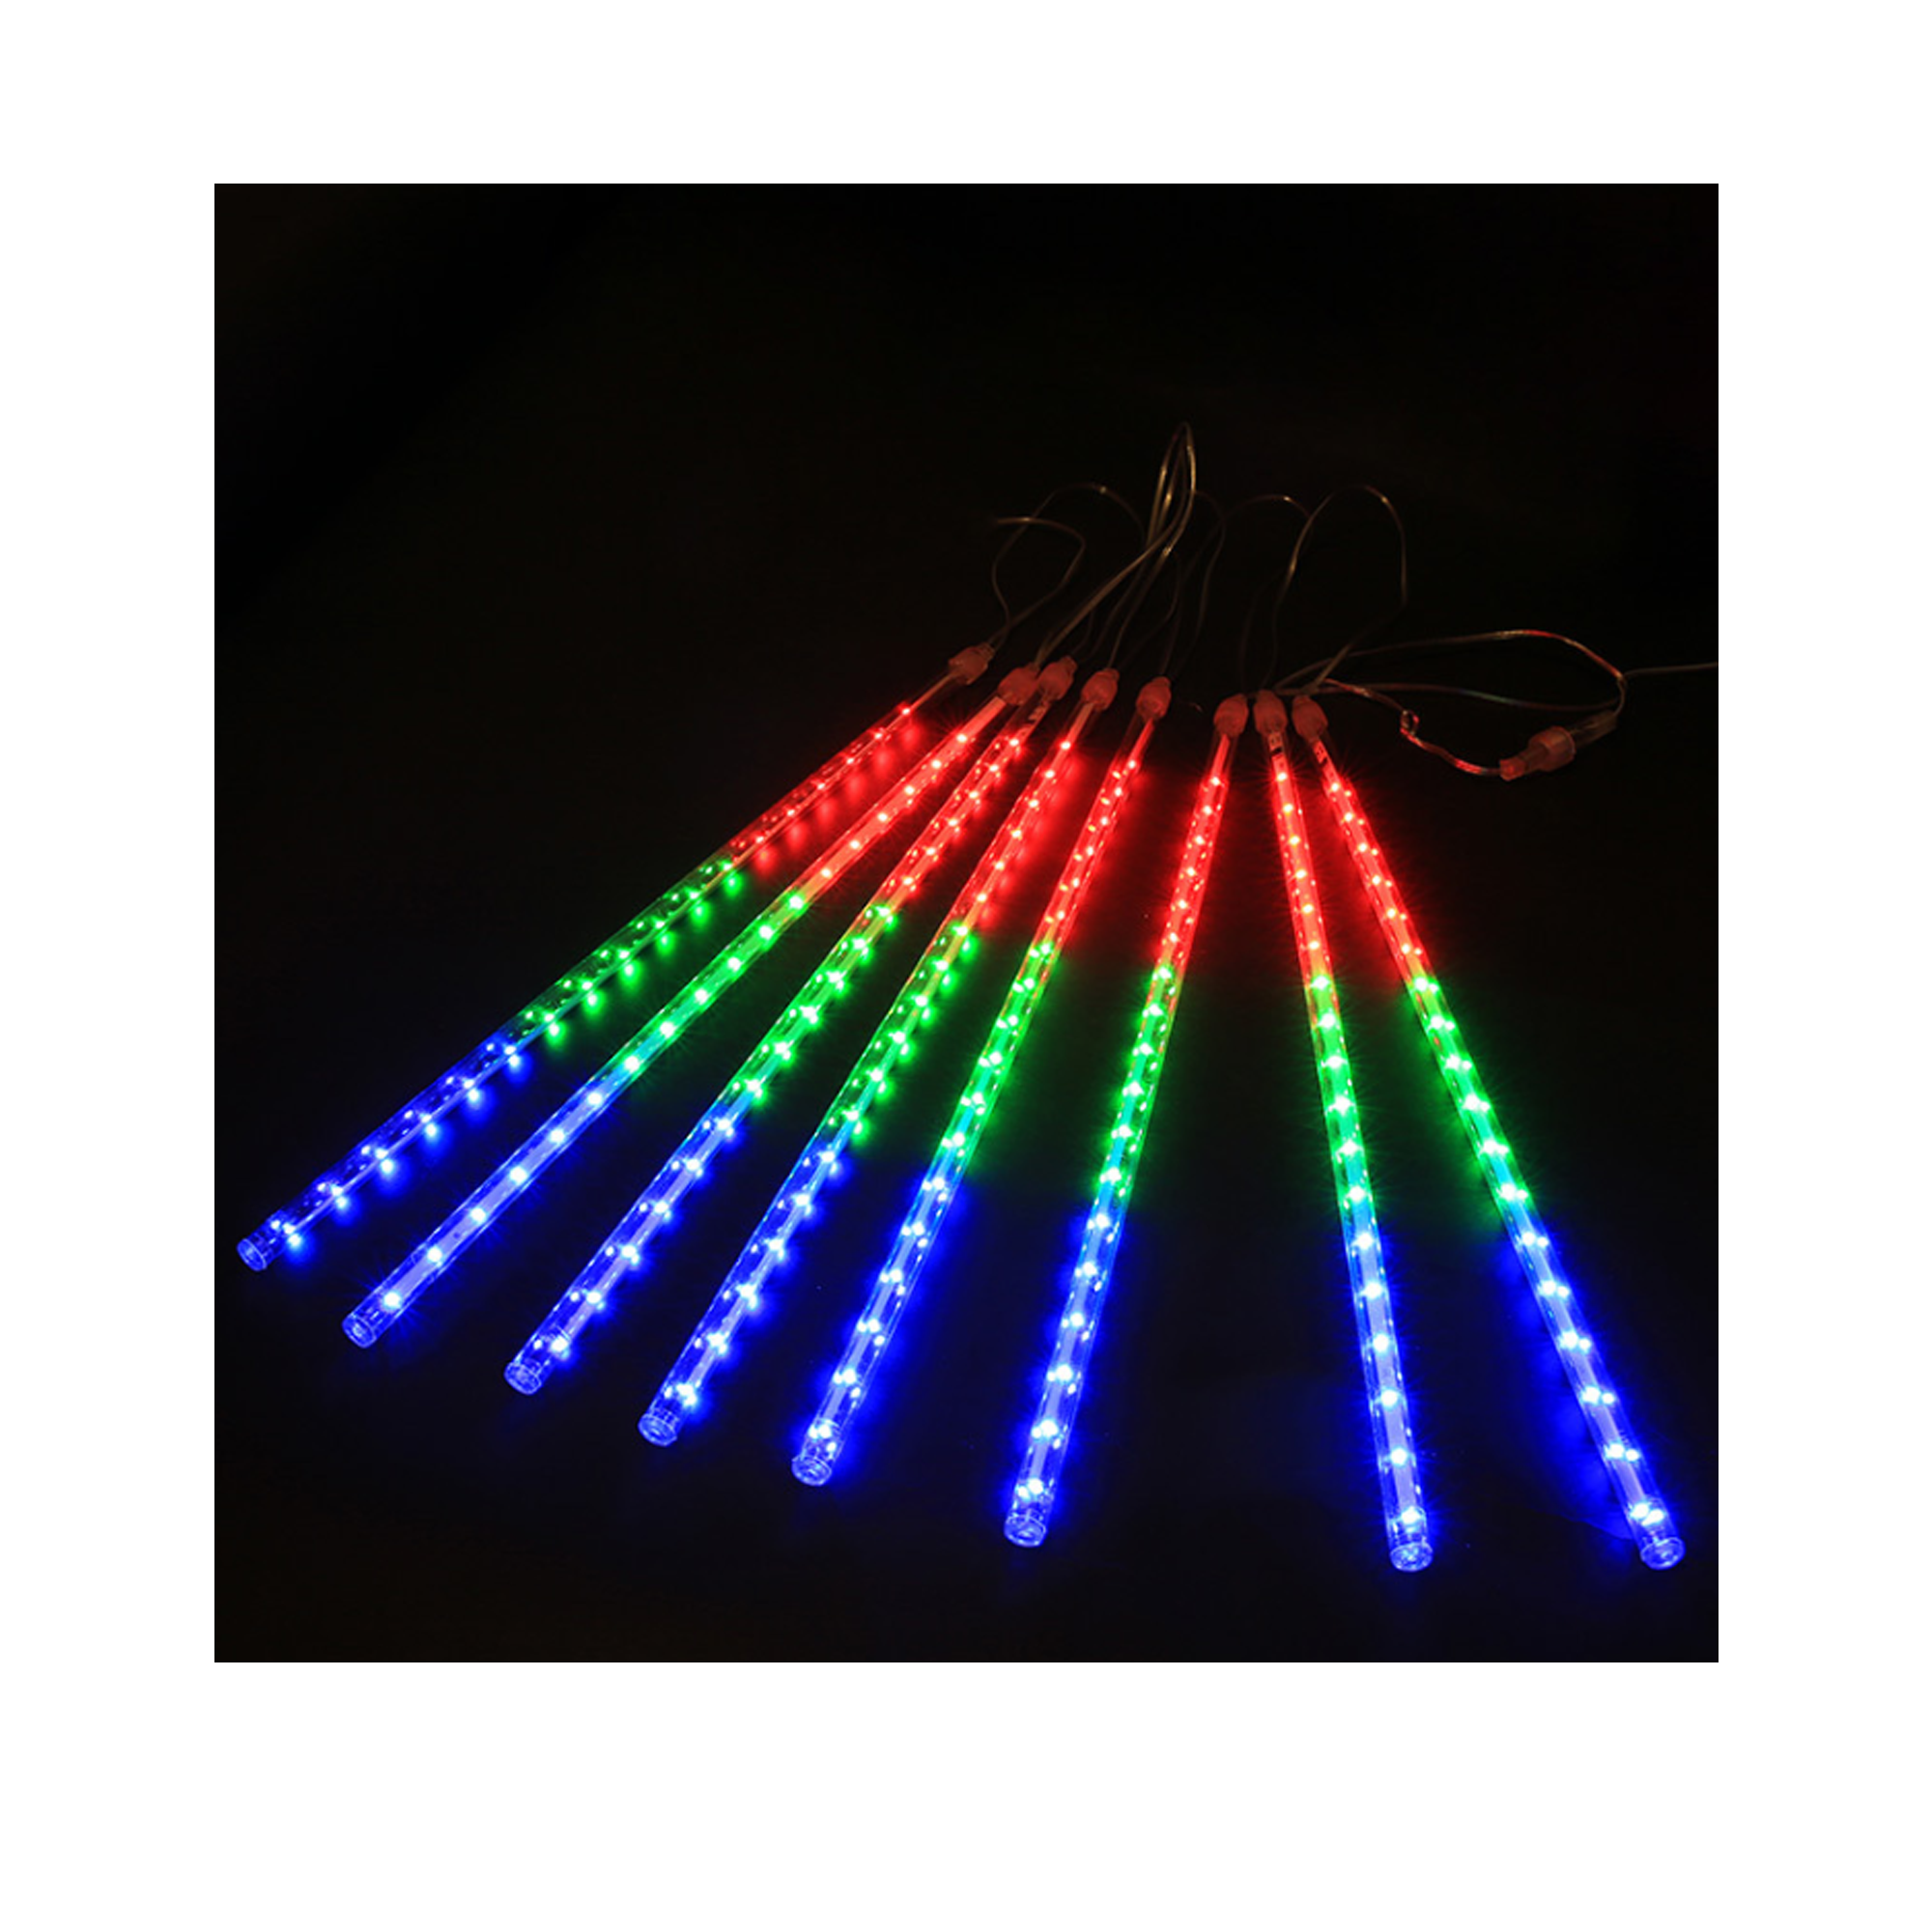 2020 Led Christmas Light Led Strip Licht 50Cm Voor Decoratie Show Bar Club Dj Prestaties